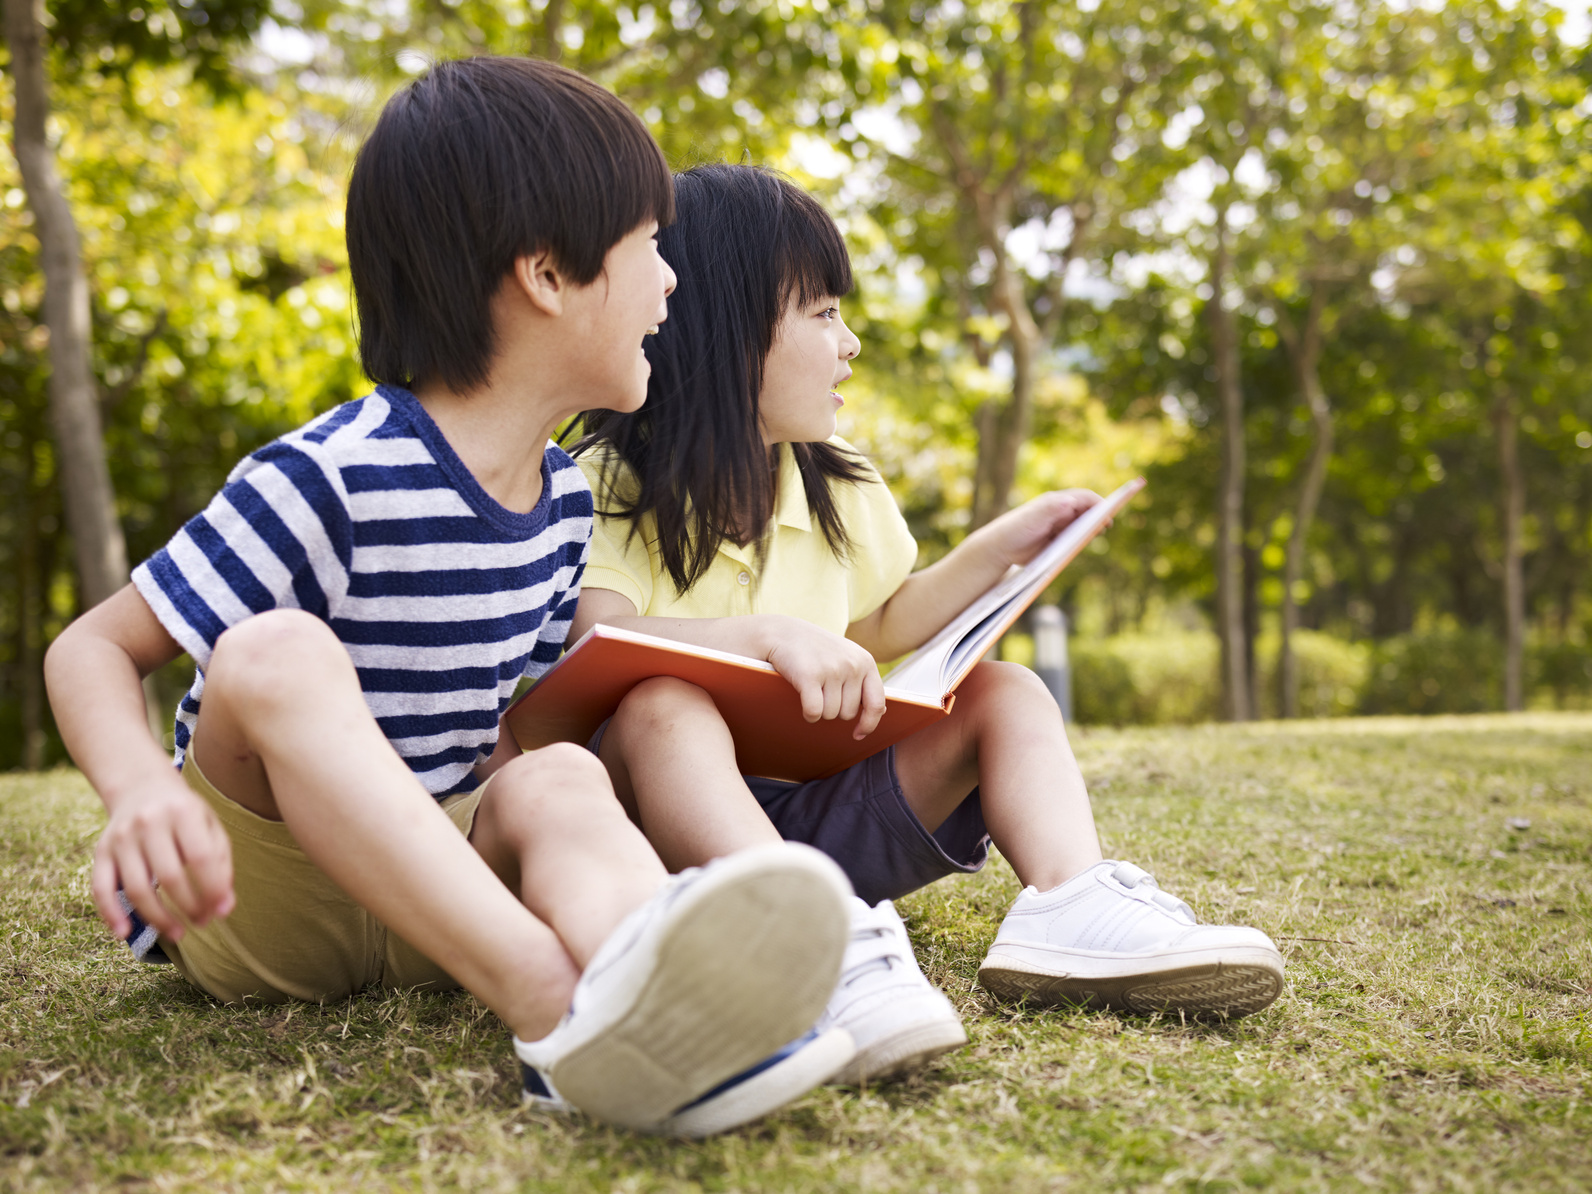 little asian boy and girl with book in hand sitting on grass looking away.